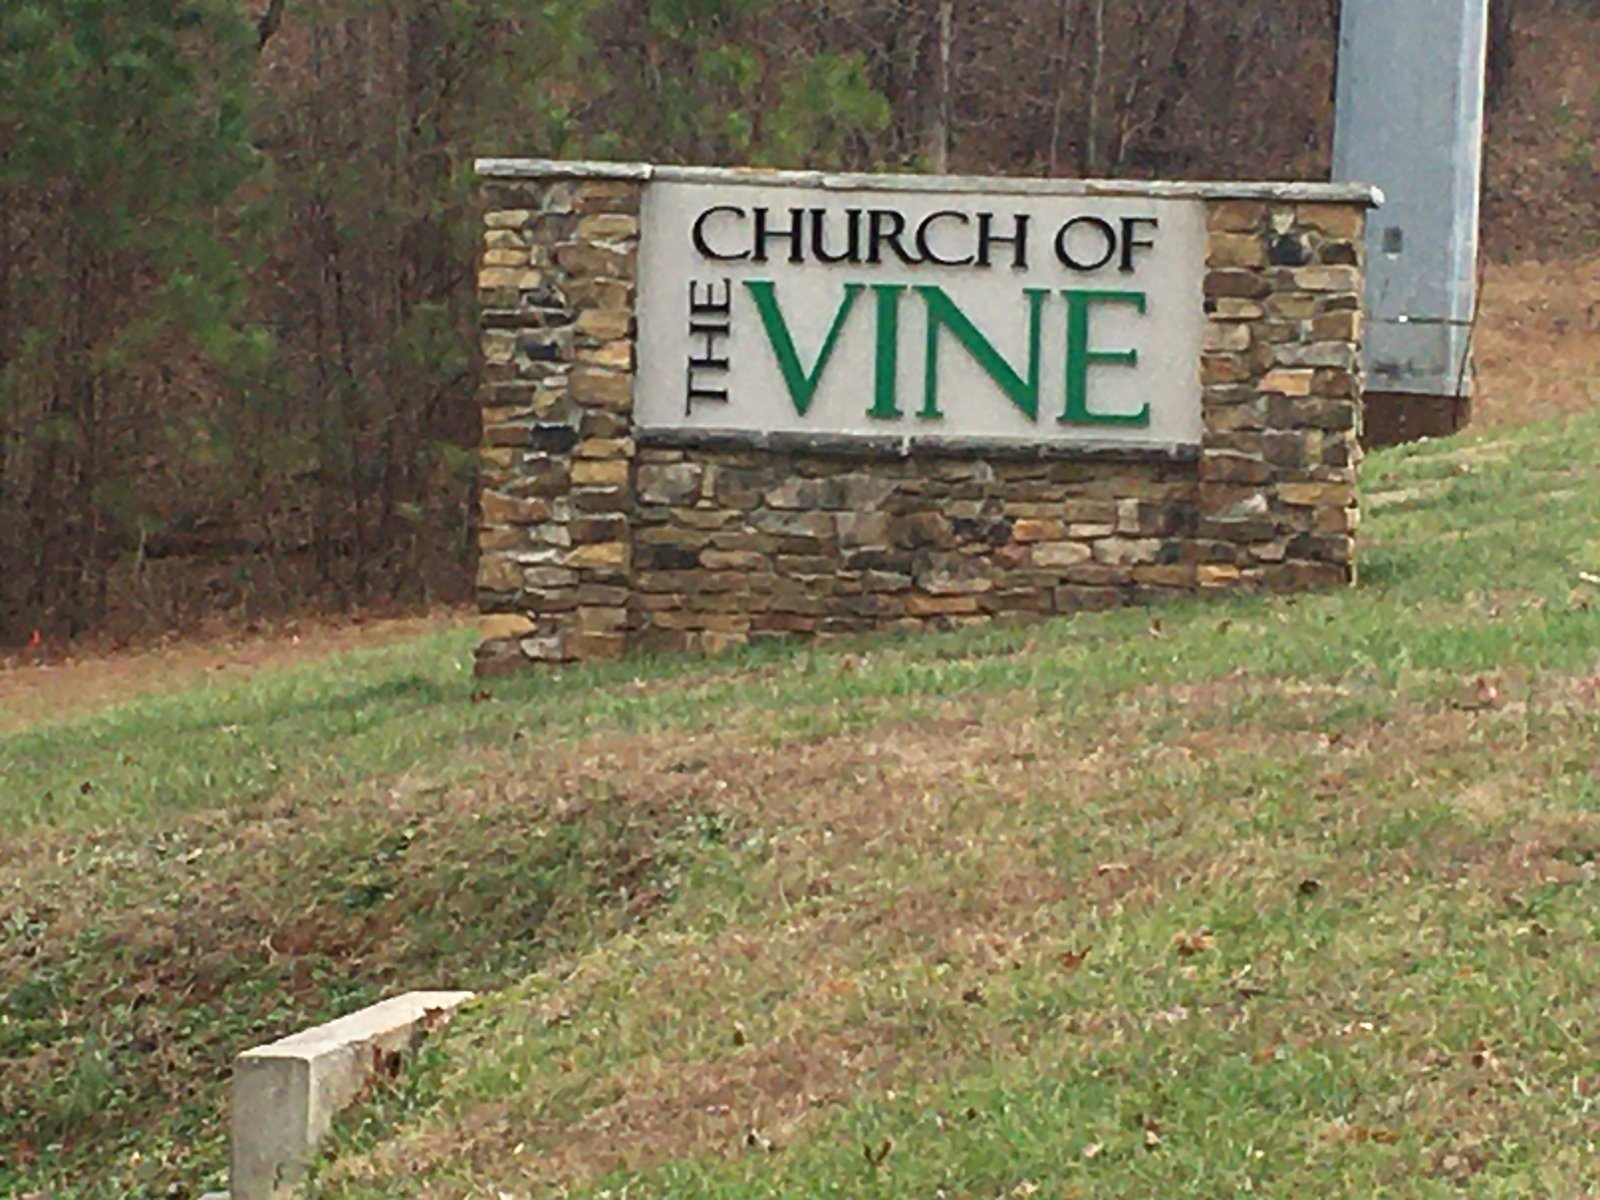 Church of the Vine